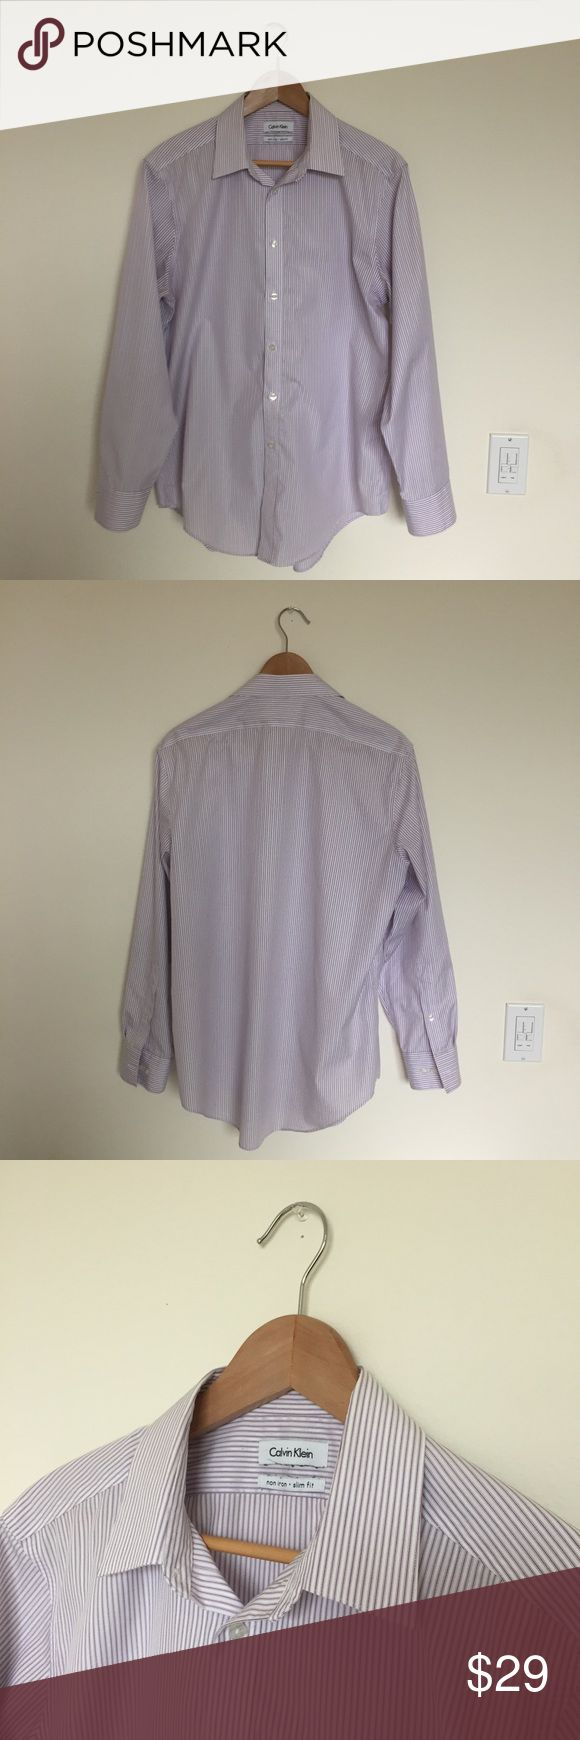 Mens Calvin Klein Striped Non-Iron Dress Shirt This slim fit dress shirt has a plum striped pattern and advanced non-iron fabric that balances temperature and wicks moisture for cool, dry comfort. Size 16 32/33 Calvin Klein Shirts Dress Shirts